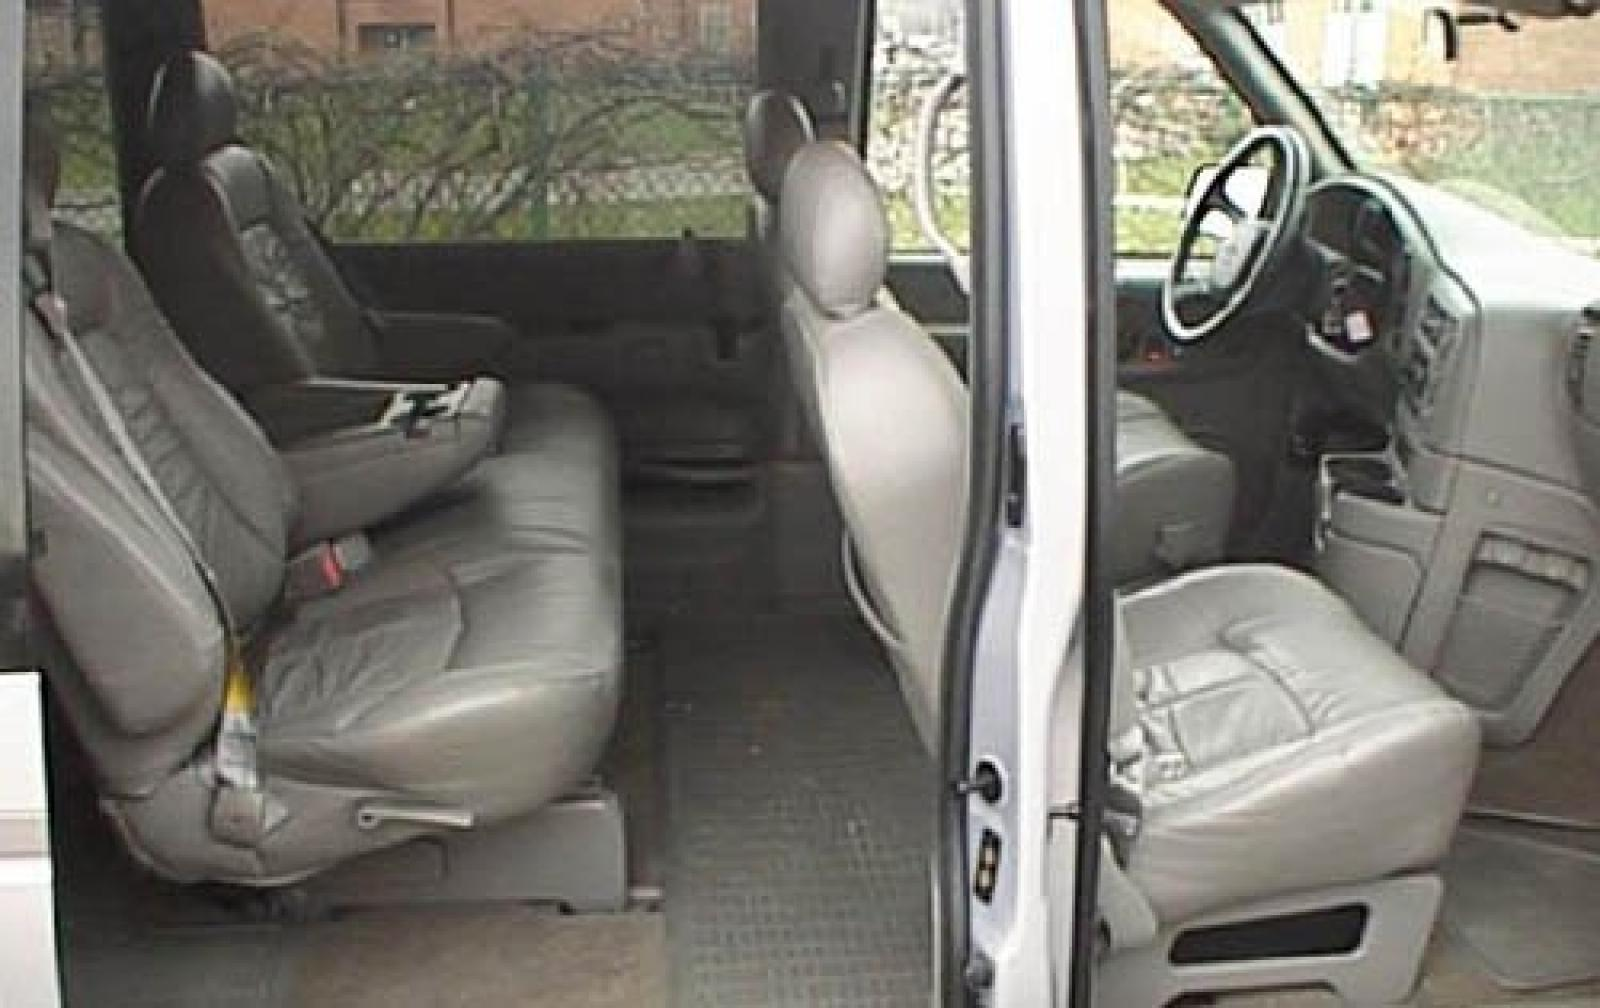 1999 Chevy Astro Van Interior 2000 Awd Wiring Diagram Free Download Chevrolet Information And Photos Zombiedrive 1600x1008 Image